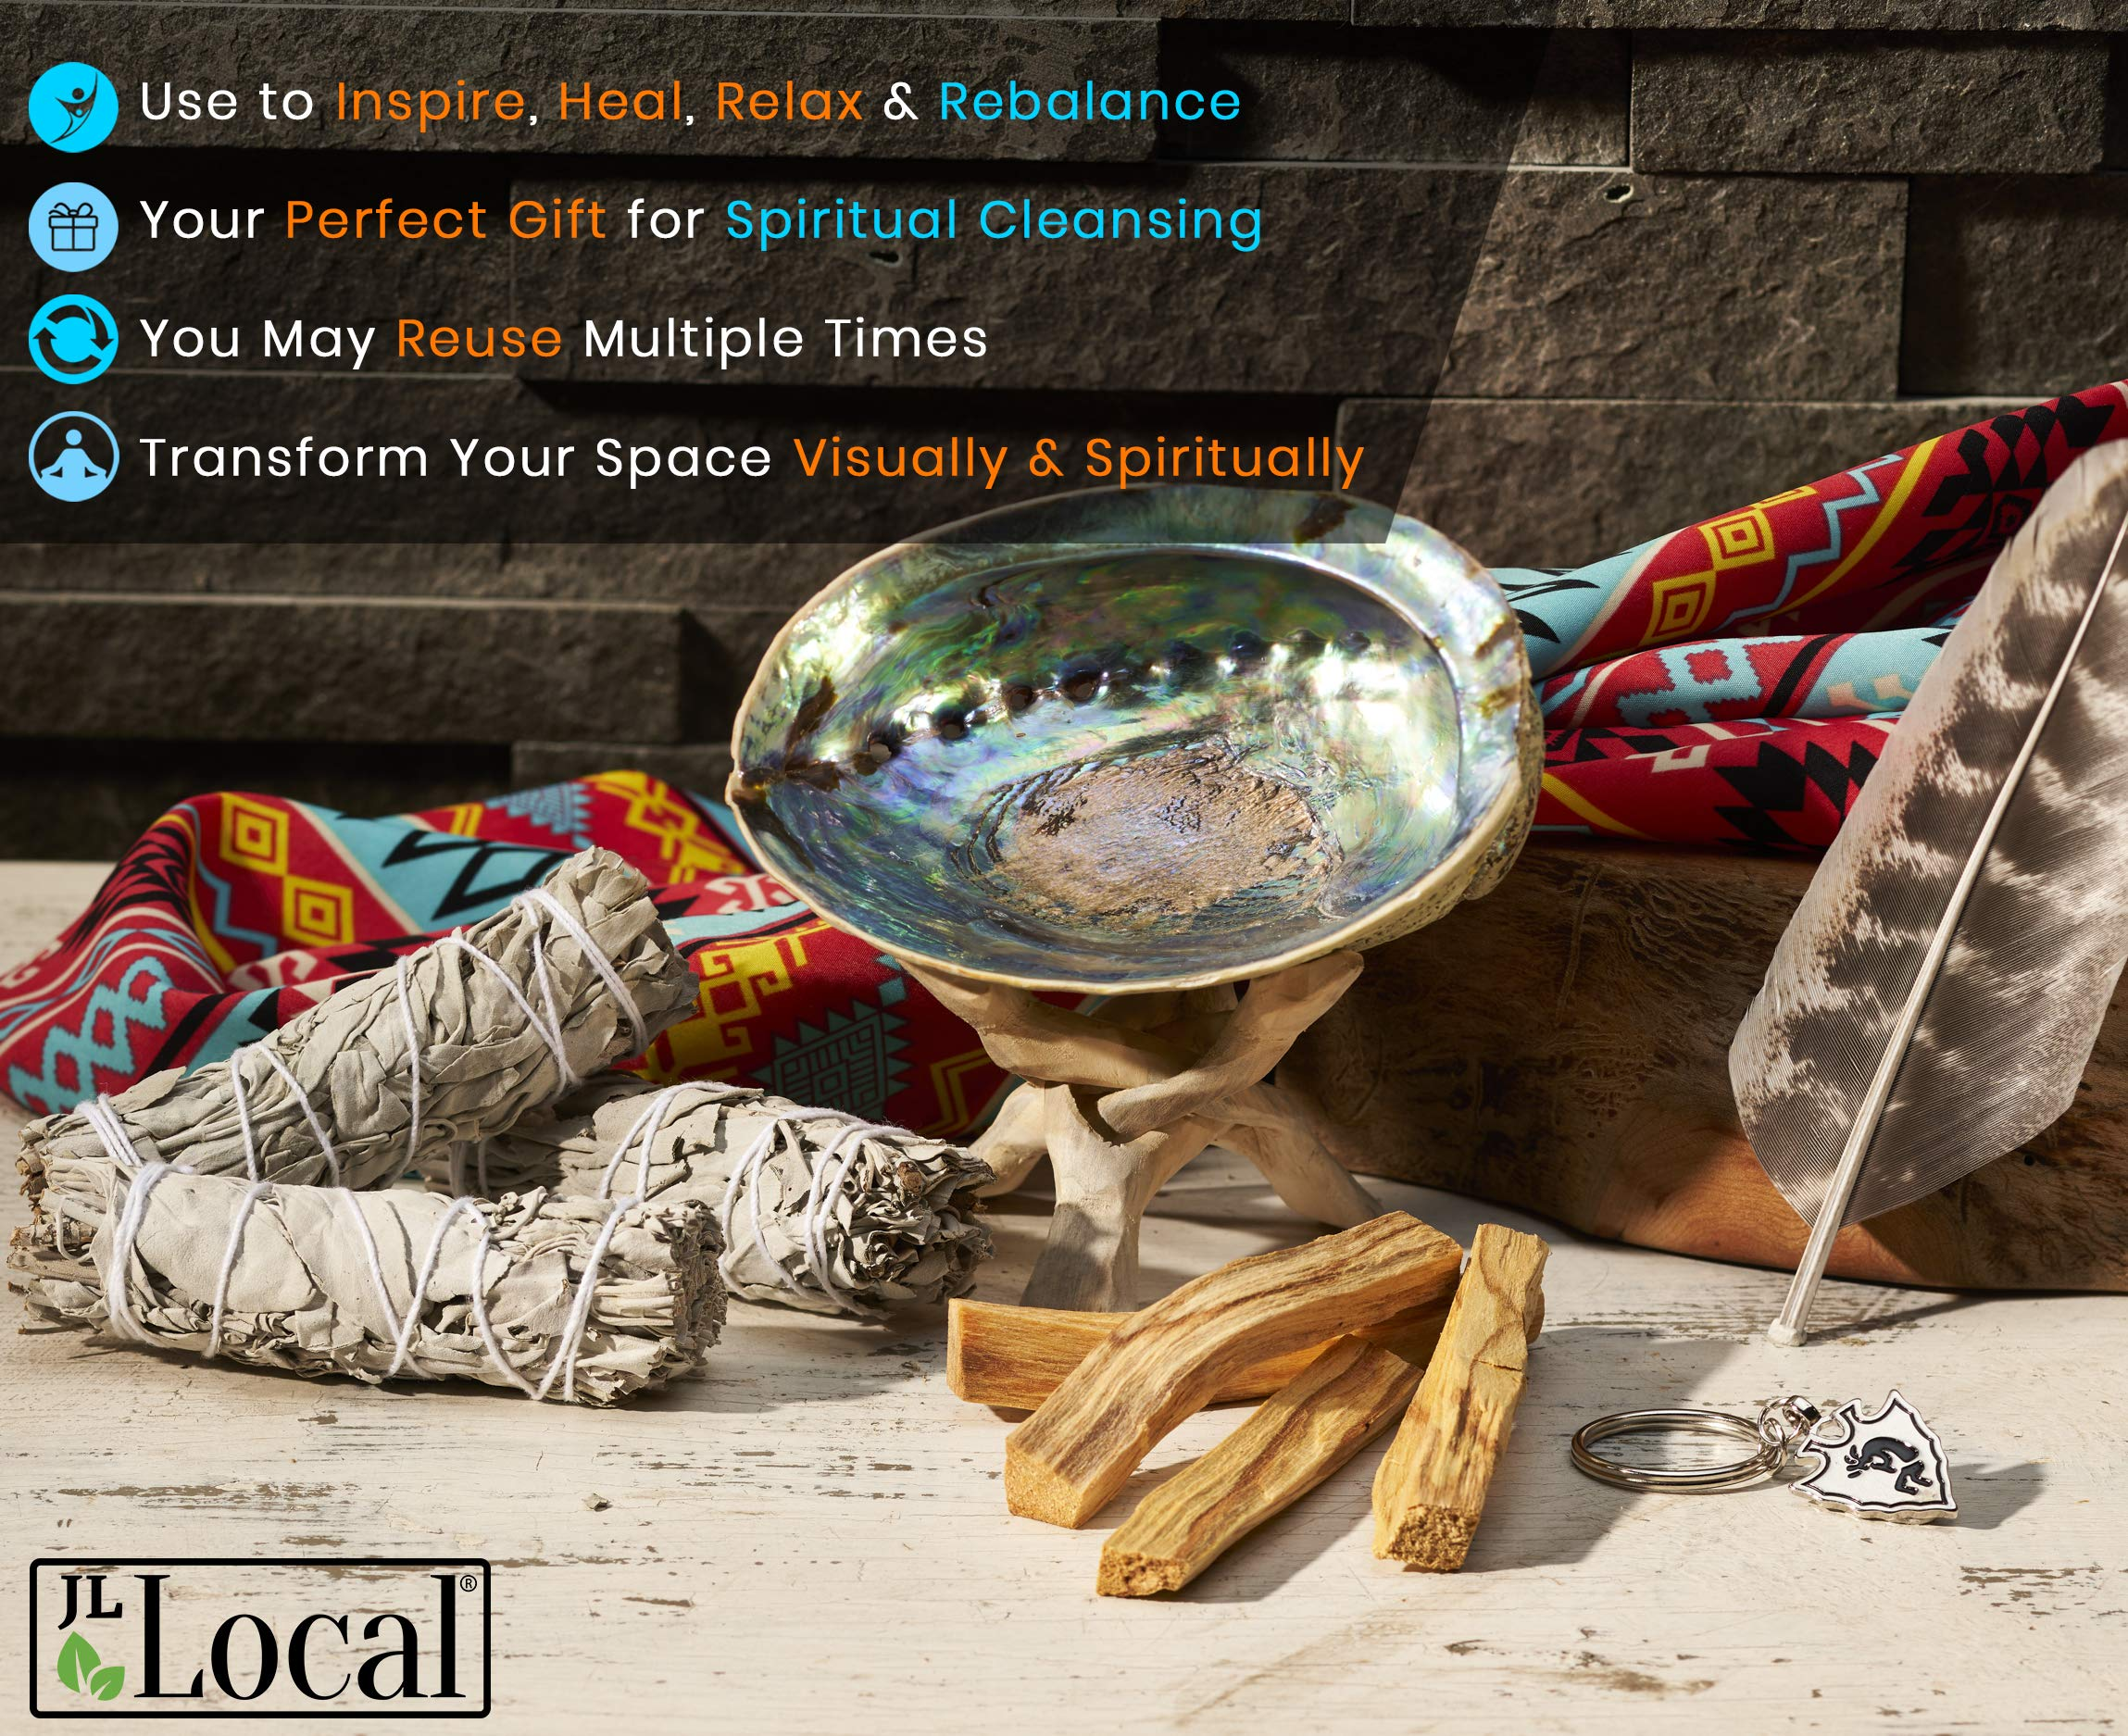 JL Local Smudge Kit - Sage, Palo Santo, Abalone Shell, Feather + More! Yoga, Meditating, Purify, Cleanse by JL Local (Image #3)